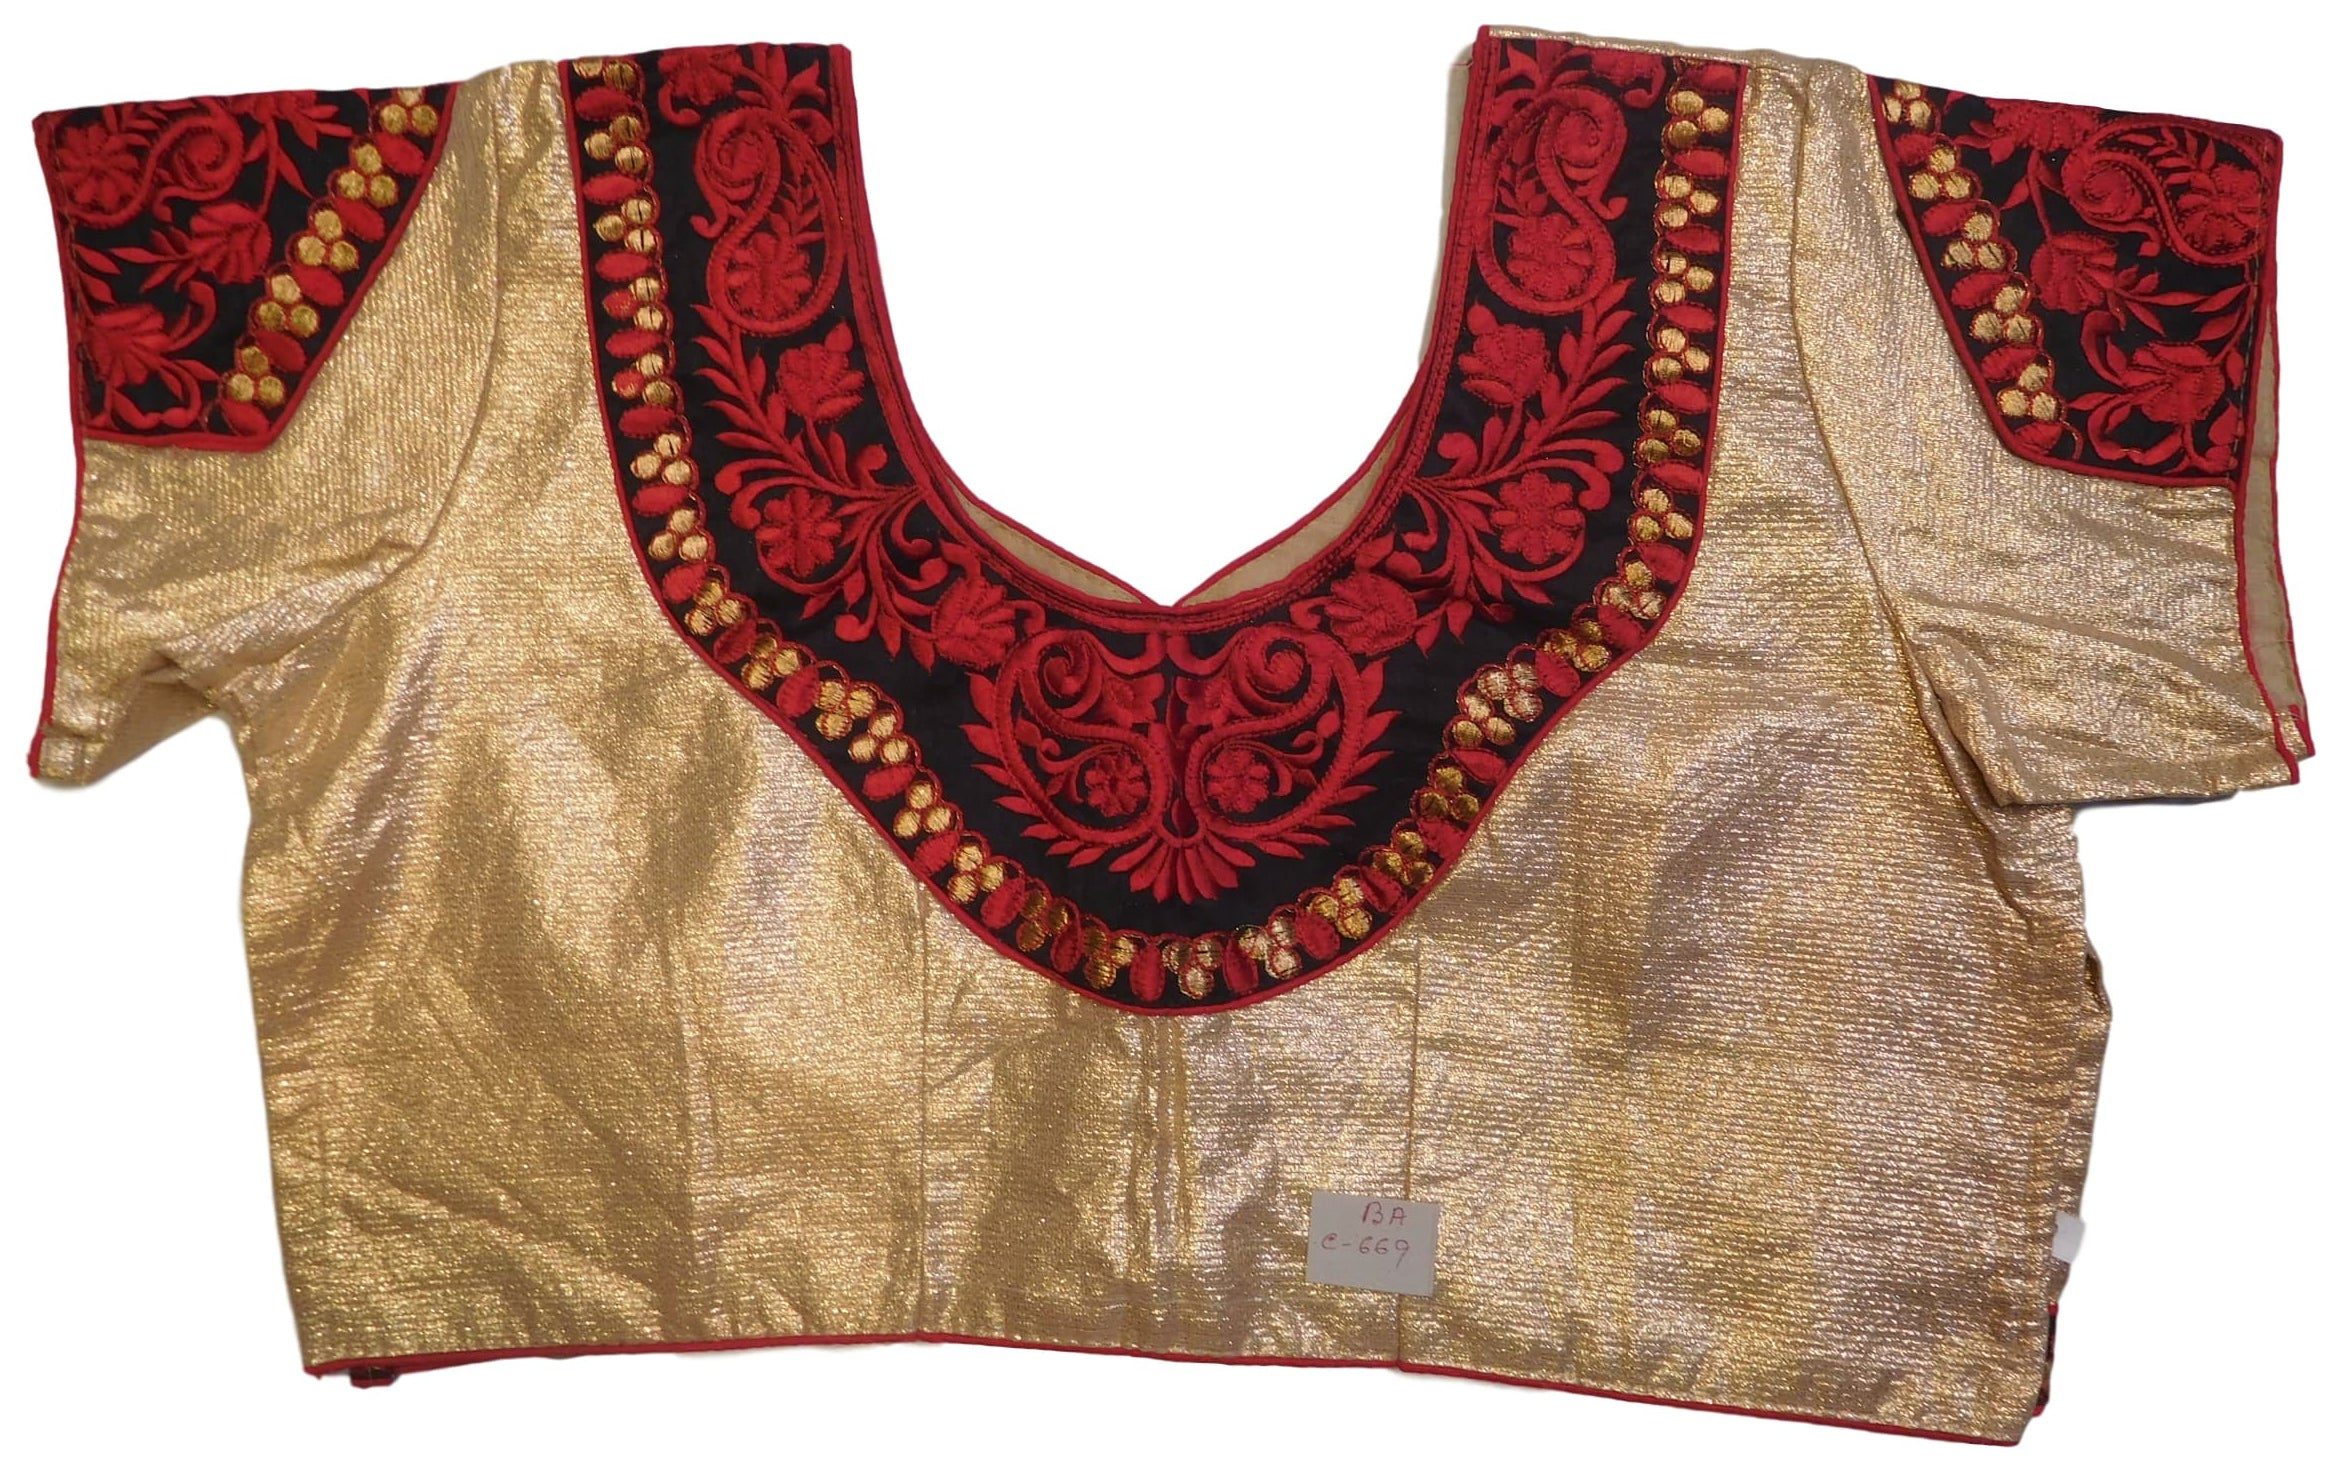 Golden Black Red Designer Brocade (Lama) Embroidery Zari Thread Work Ready To Wear Stitched Blouse